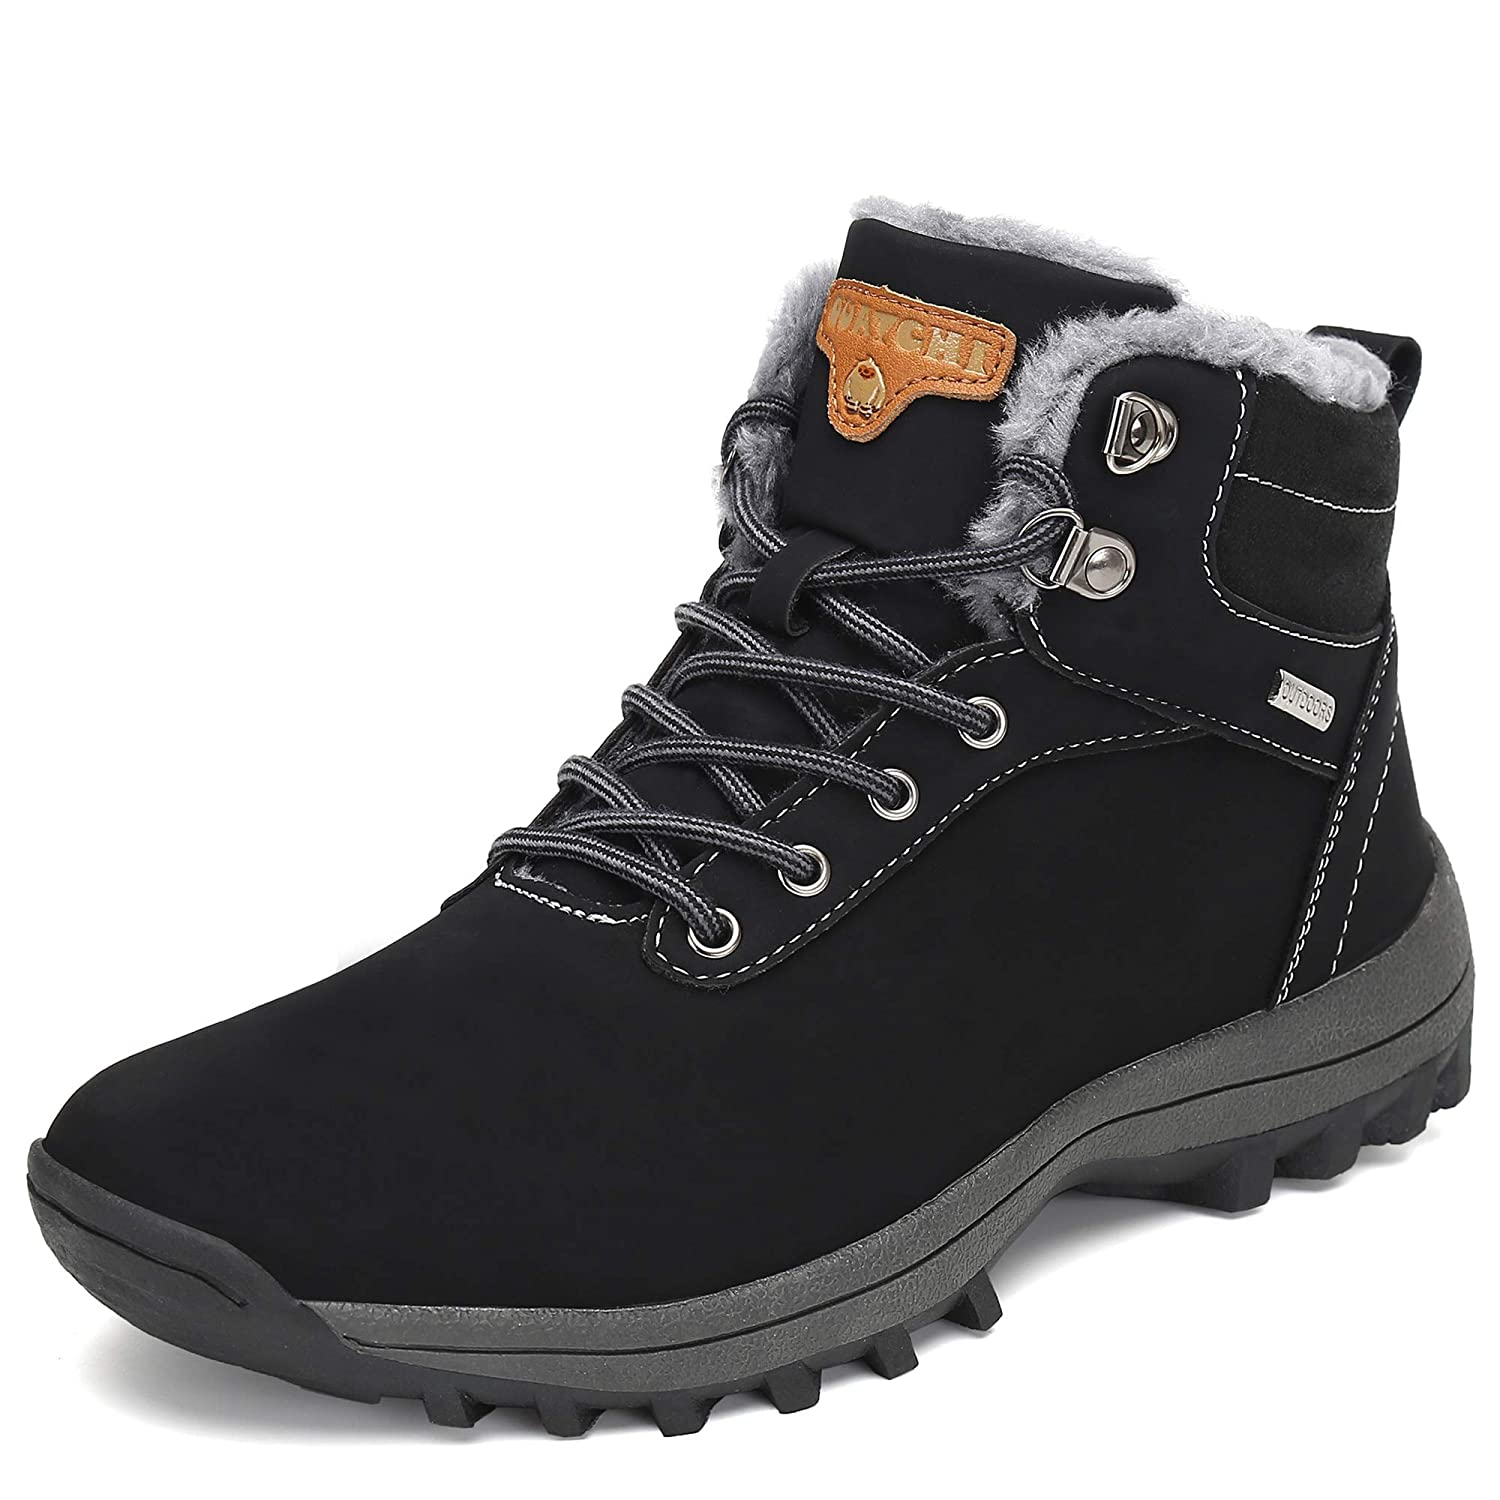 149a3fce82a Pastaza Men Women Snow Boots Winter Warm Ankle Boots Faux Fur Lined  Anti-Slip Waterproof Boots Outdoor Hiking Work Shoes